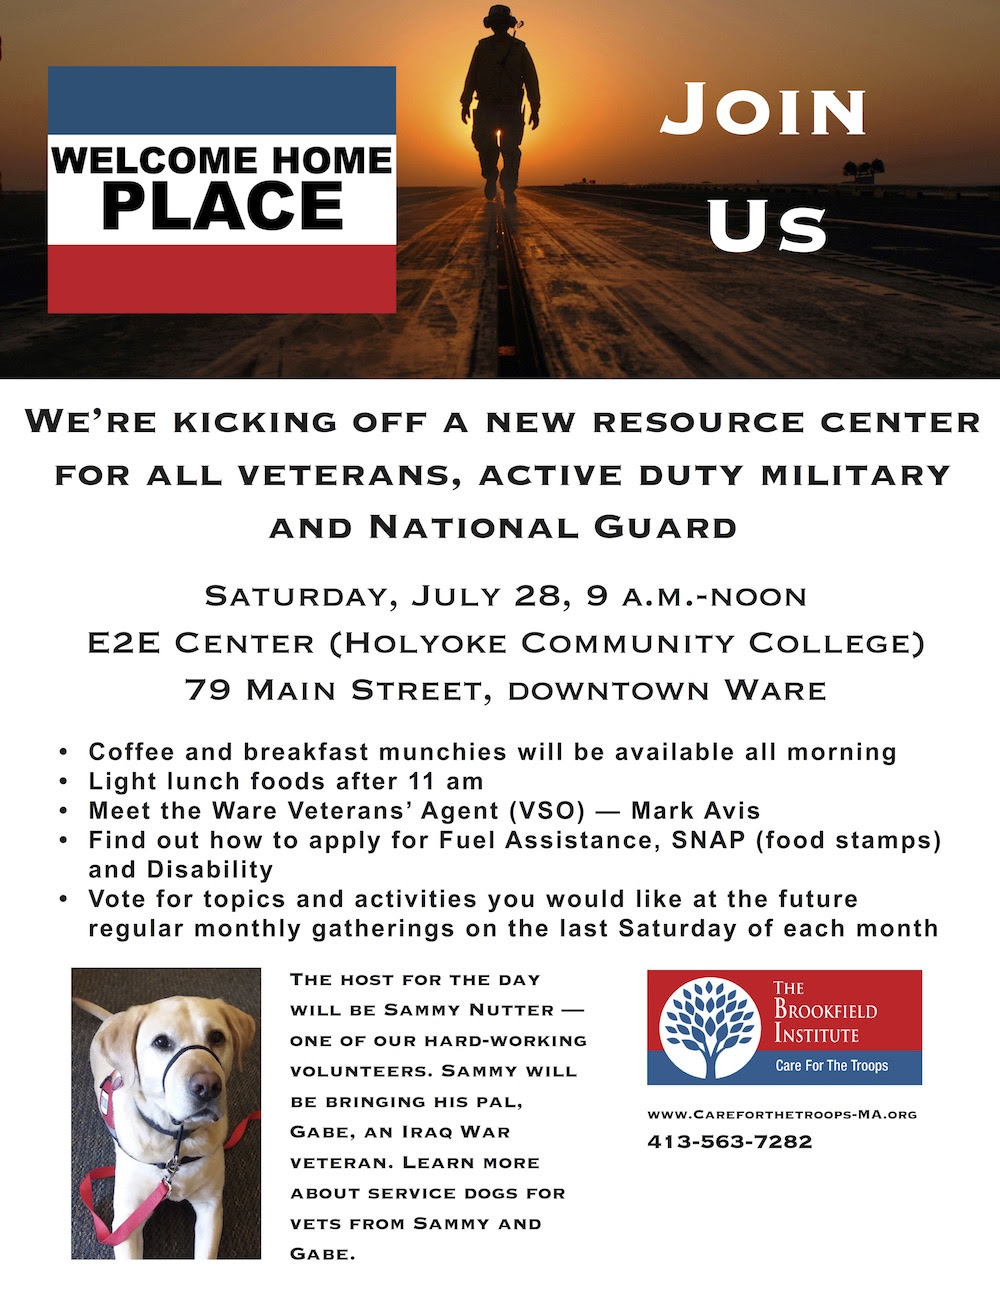 Welcome Home Place flier